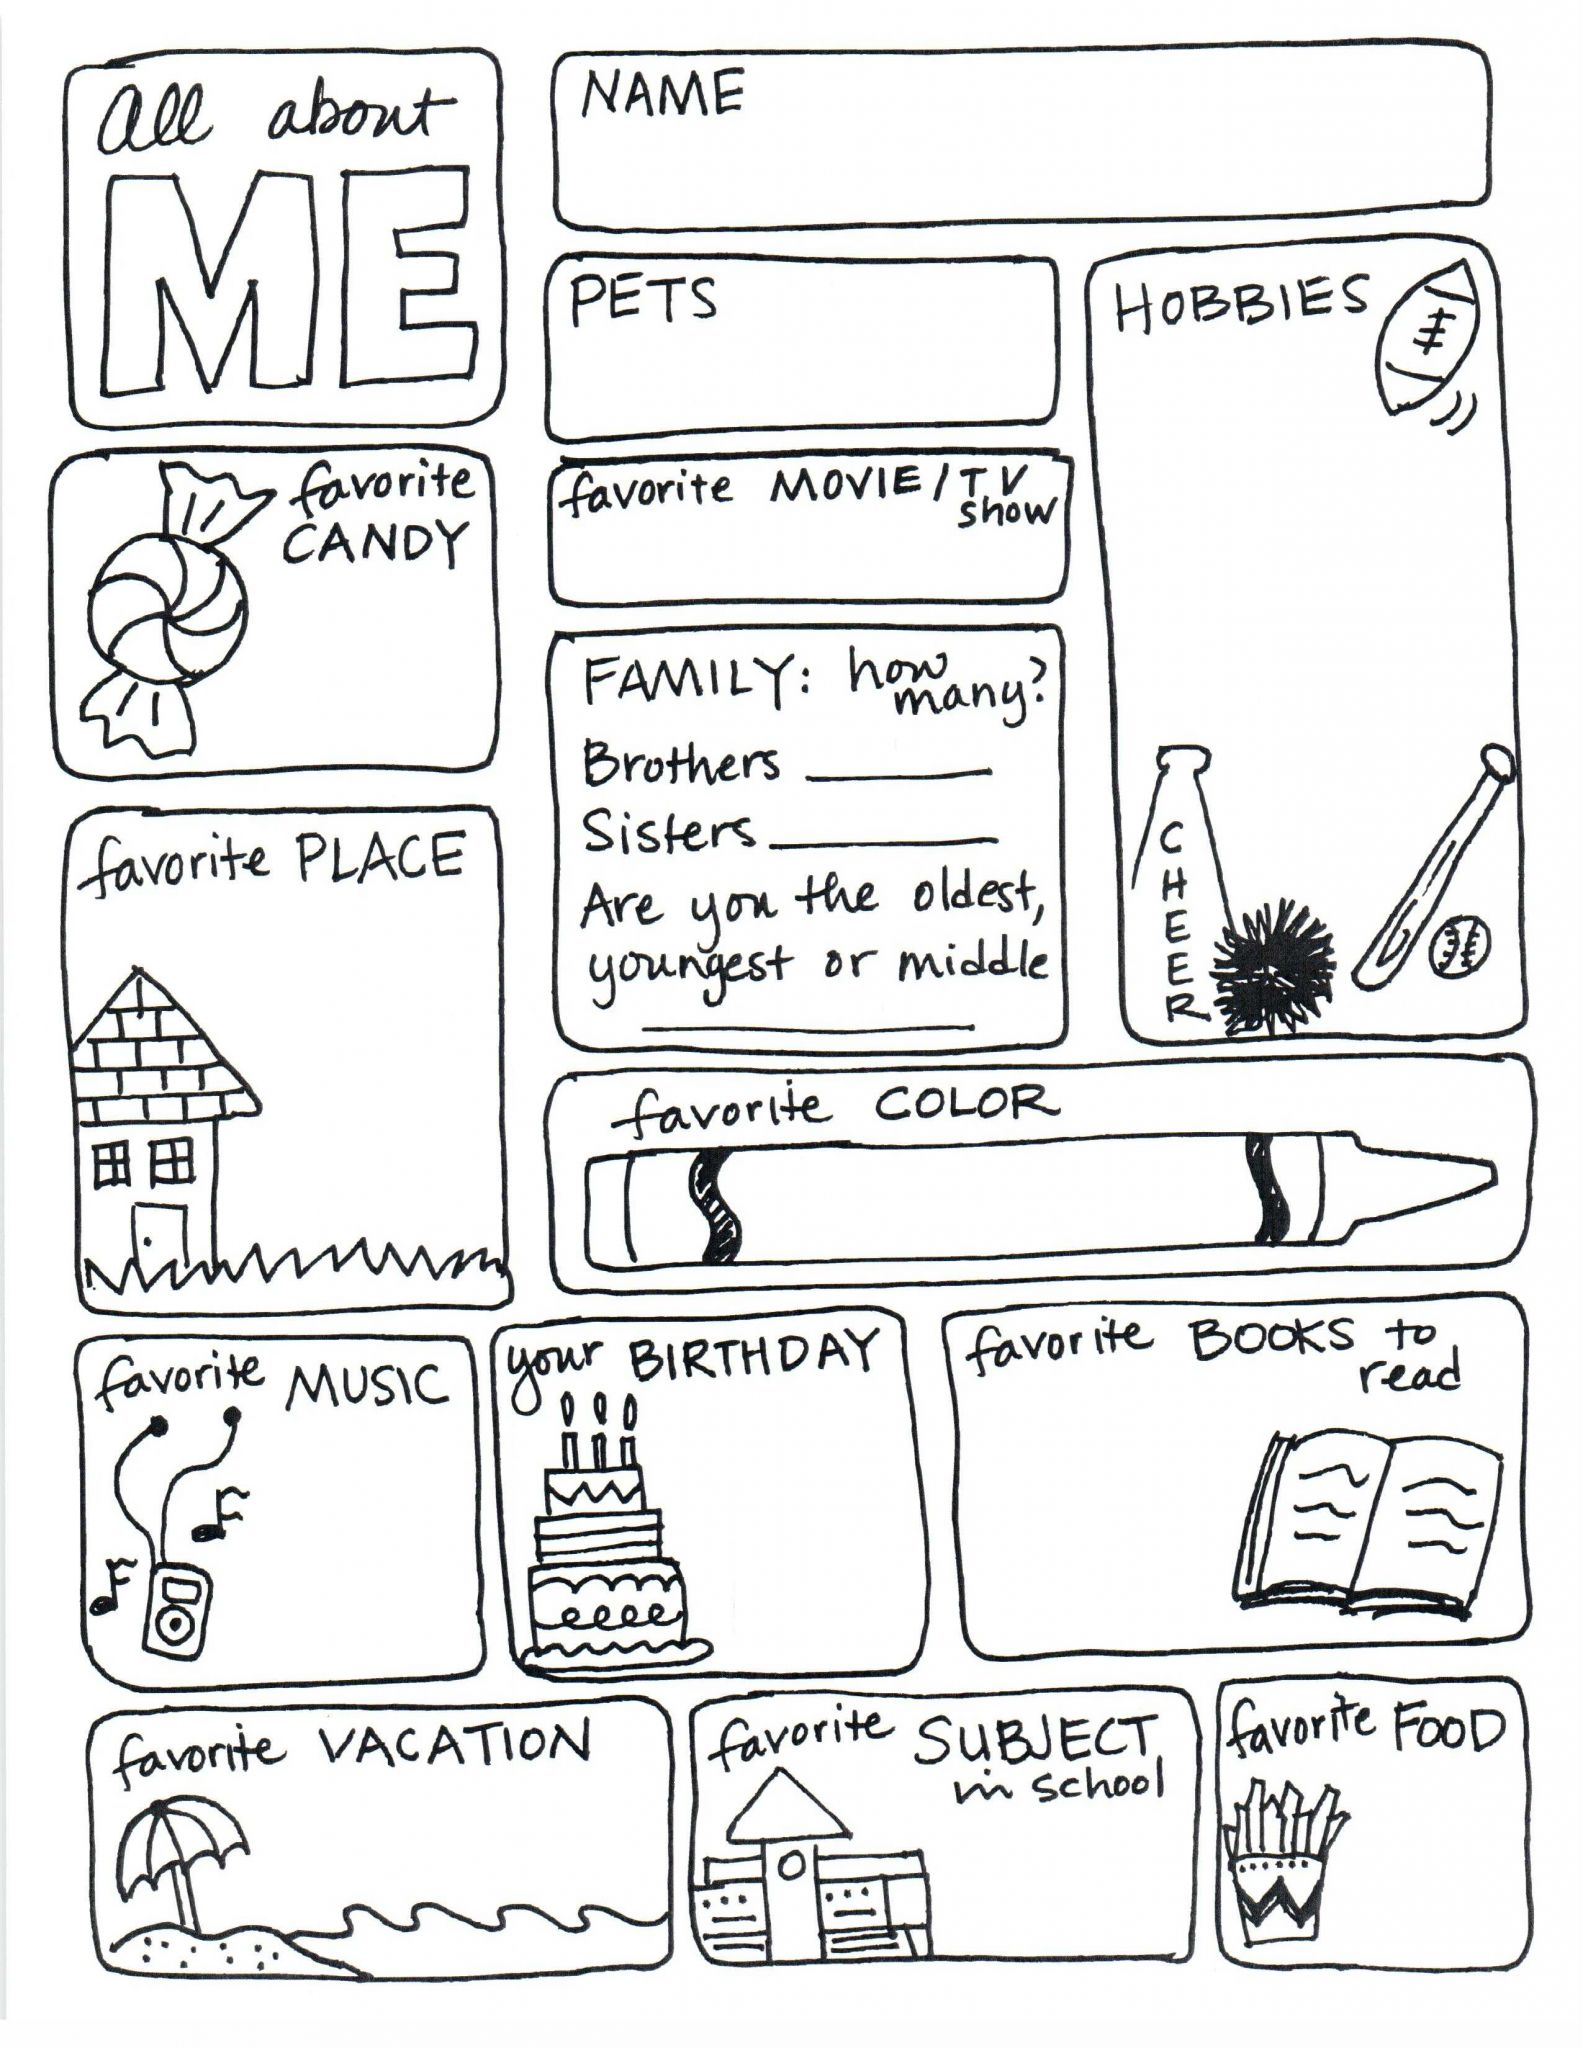 Scale Drawings Worksheet 7th Grade Also Mesmerizing All About Me Activities 4 Drawing